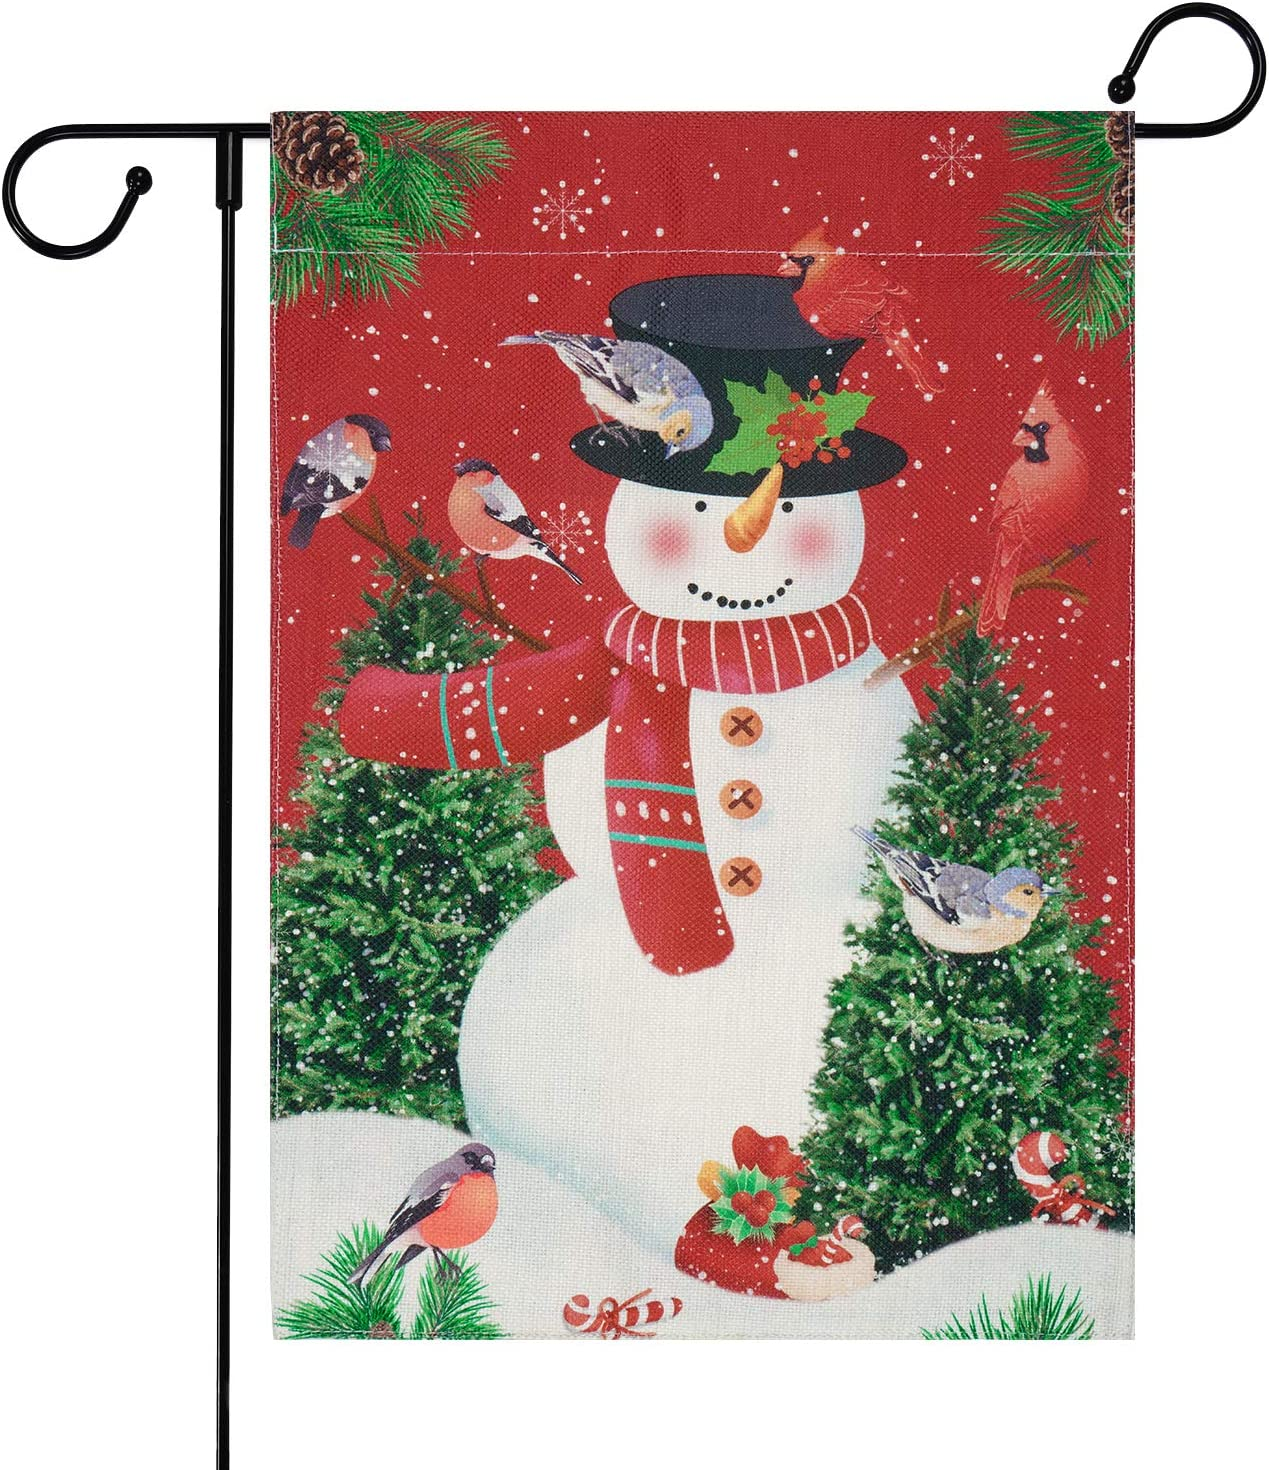 Merry Christmas Garden Flag, Snowman Yard Flag with Anti-Wind Clip, Snowflake House Flags with Tree , Decorative Holiday Flags for Outside, Winter Garden Flags Burlap Double Sided, 12.5 x 18 inches